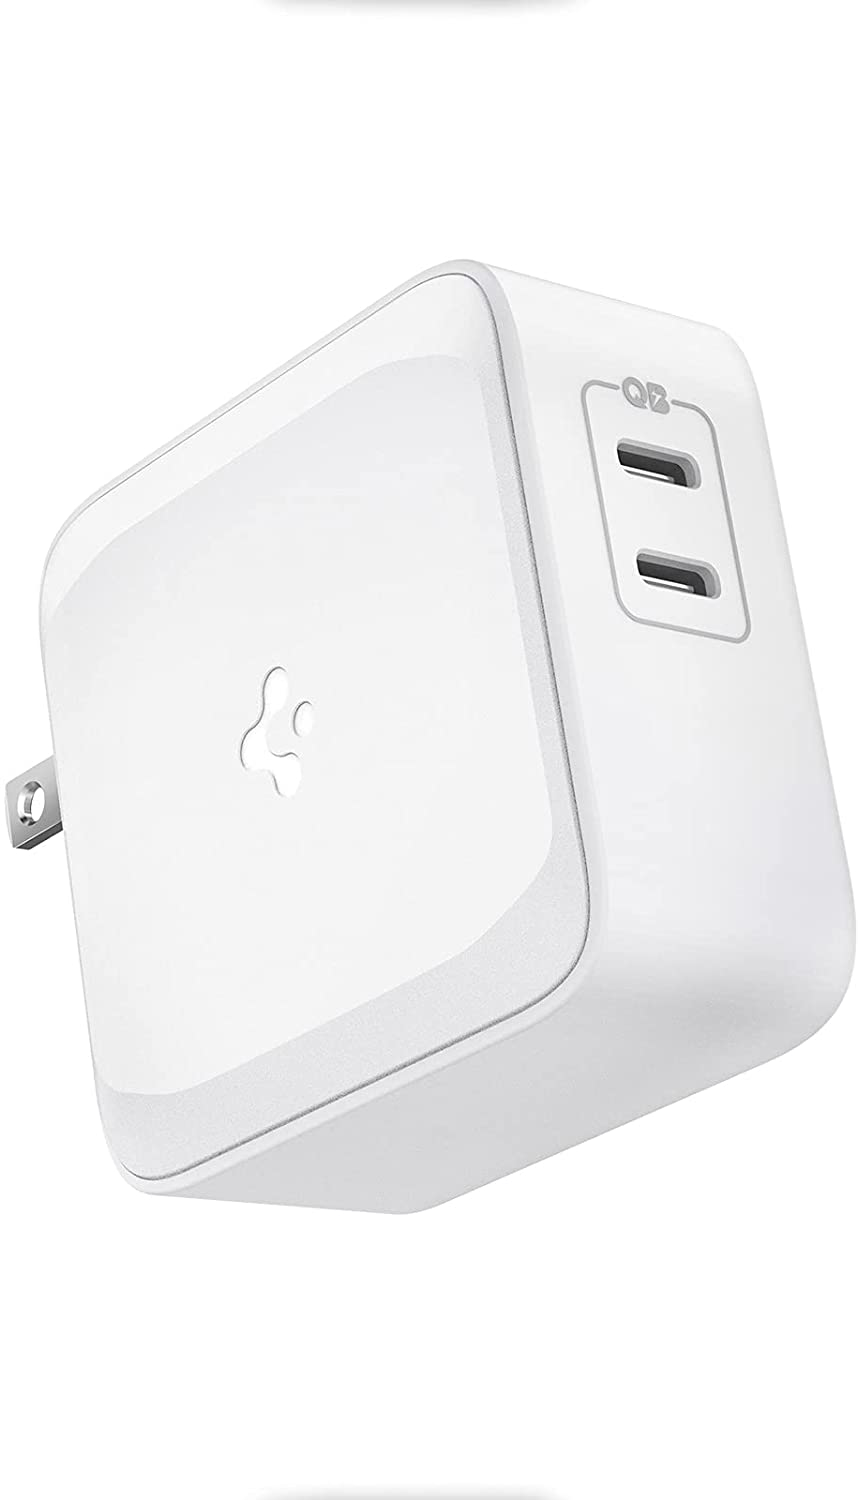 Spigen 70W Dual USB C Wall Charger $26.99 Coupon